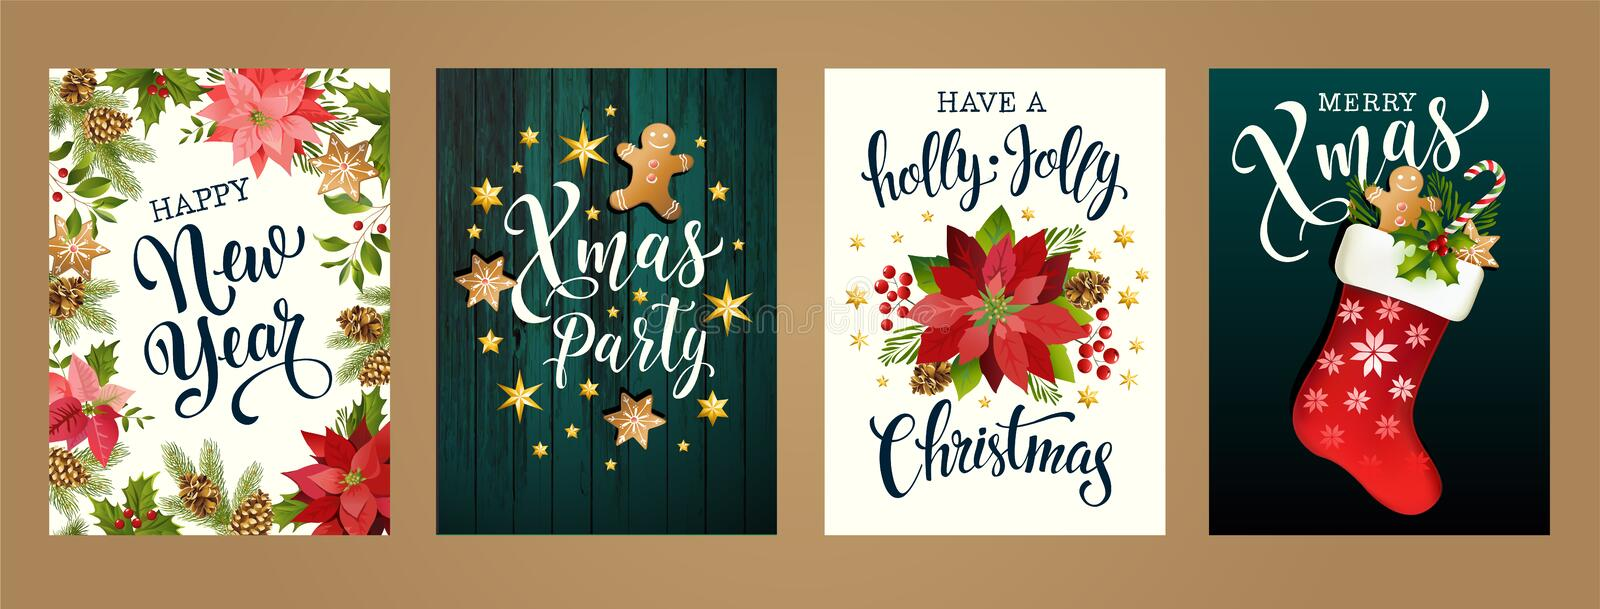 Merry Christmas and Happy new year 2019 white and black colors. Design for poster, card, invitation, card, flyer, brochure. Vector. Illustrations royalty free illustration